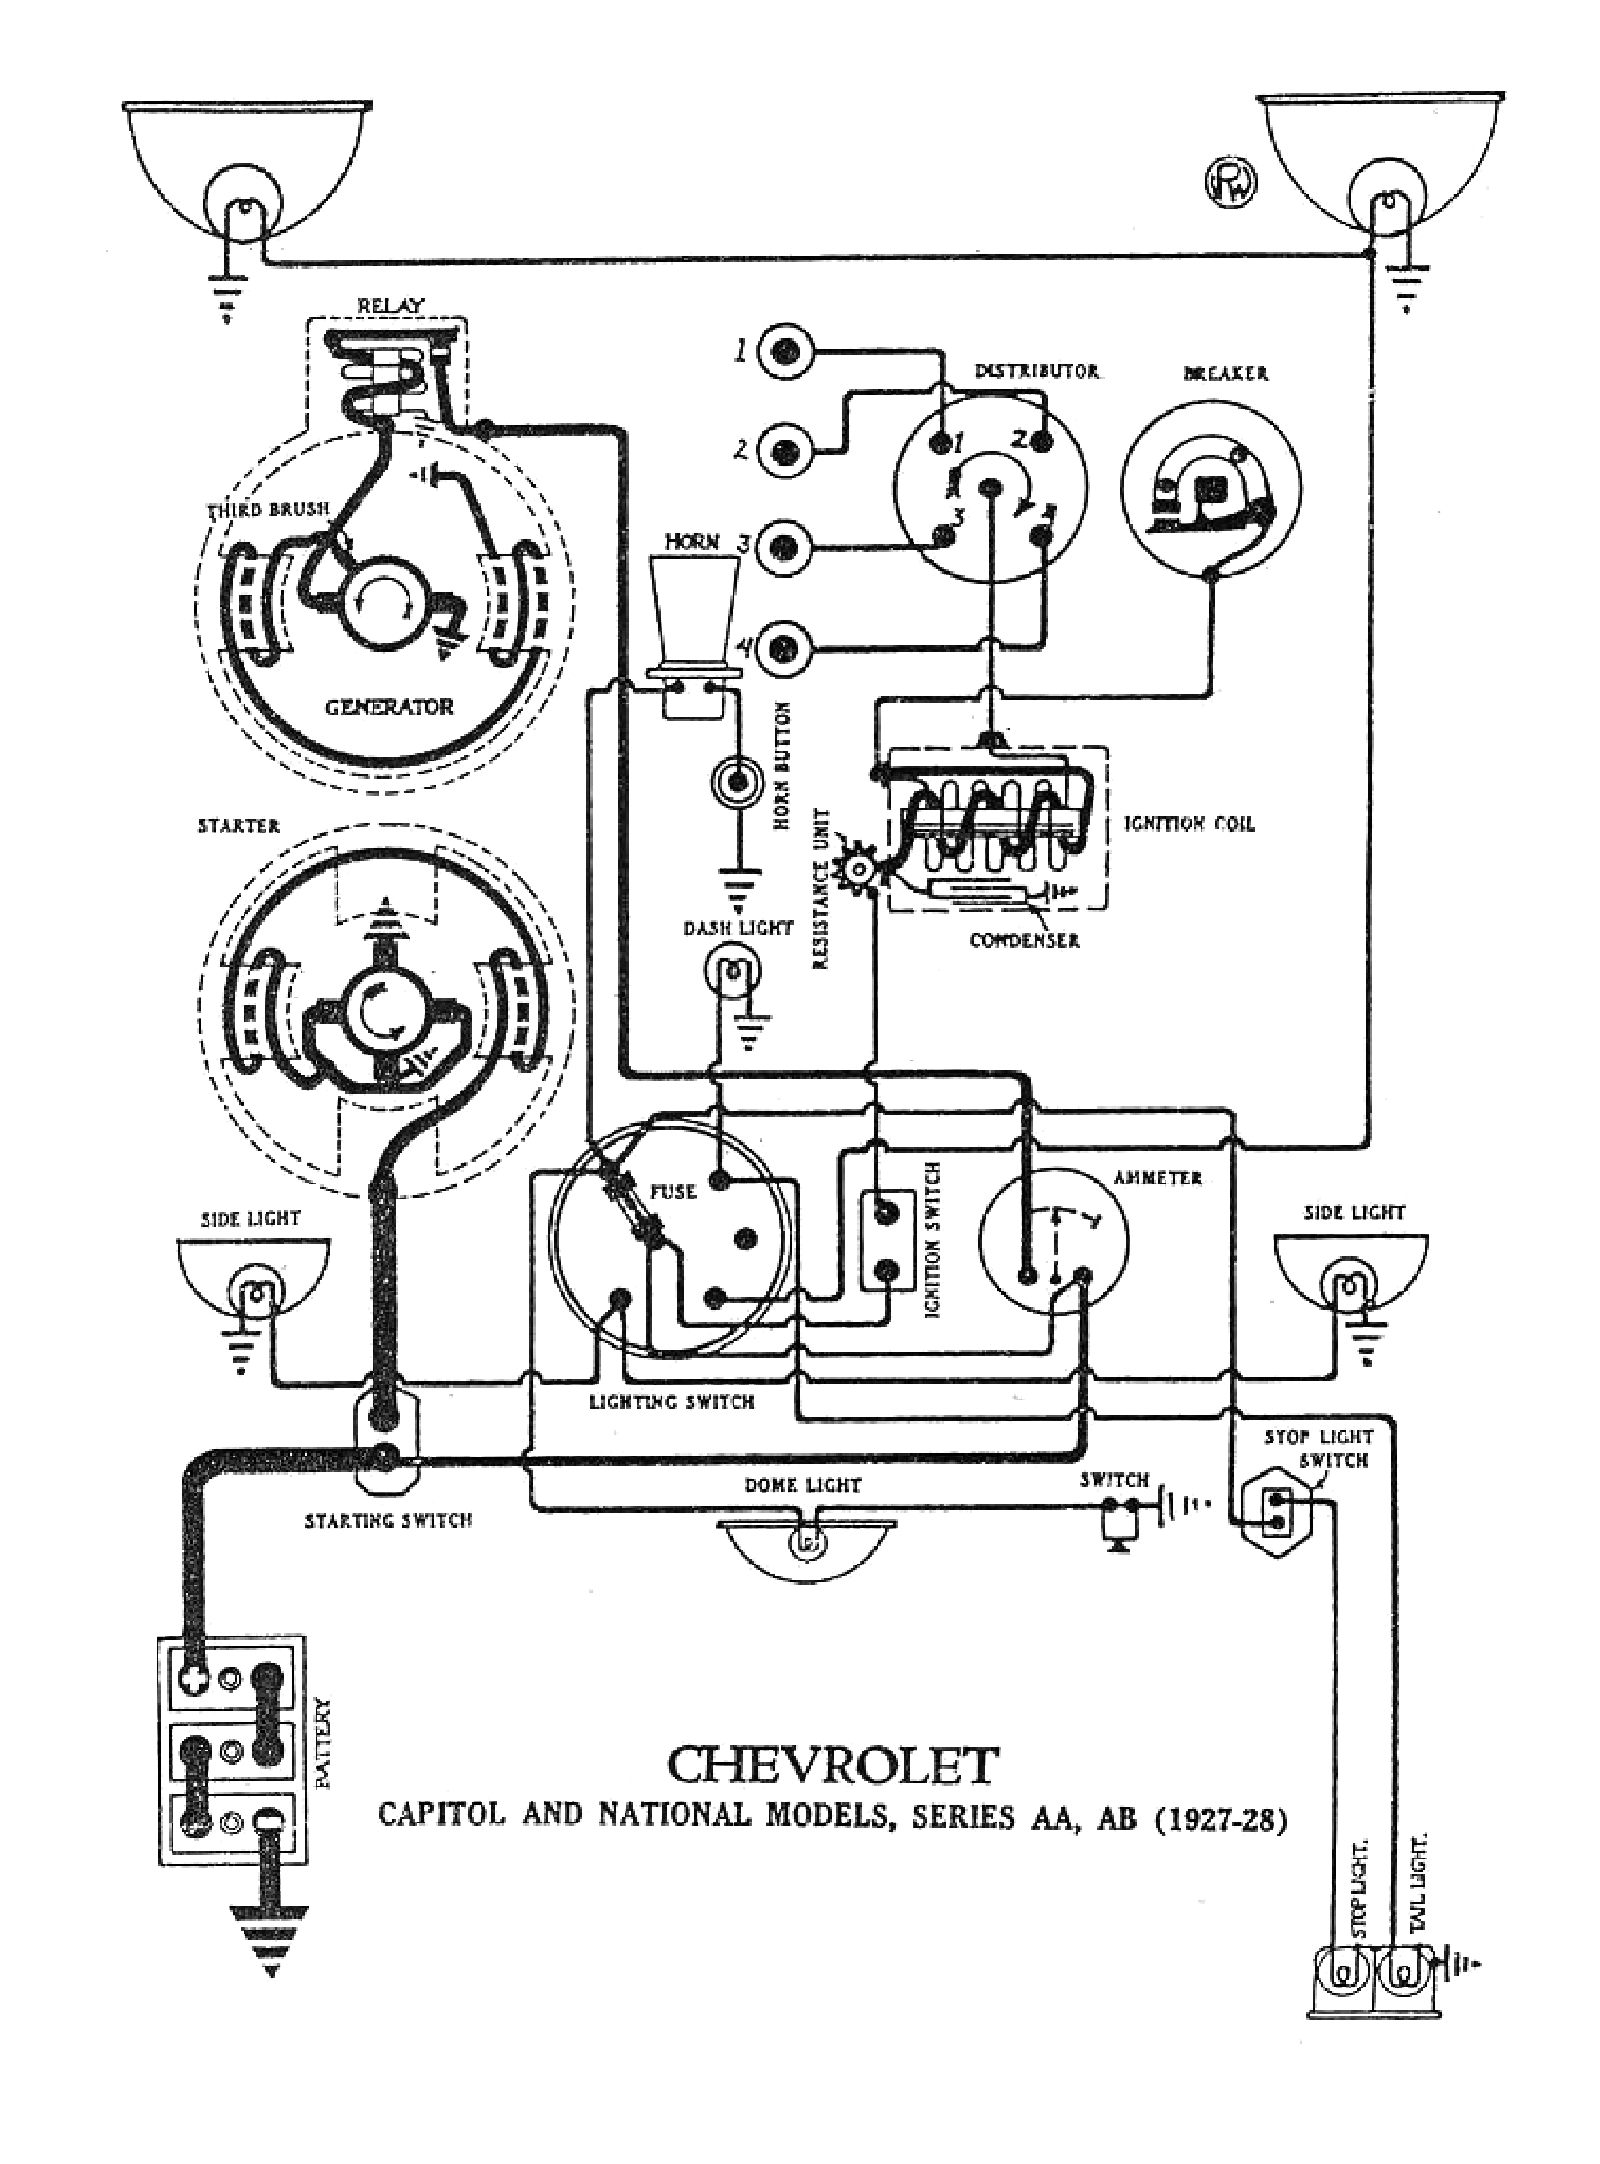 2728wiring chevy wiring diagrams 1946 chevy wiring harness instructions at creativeand.co